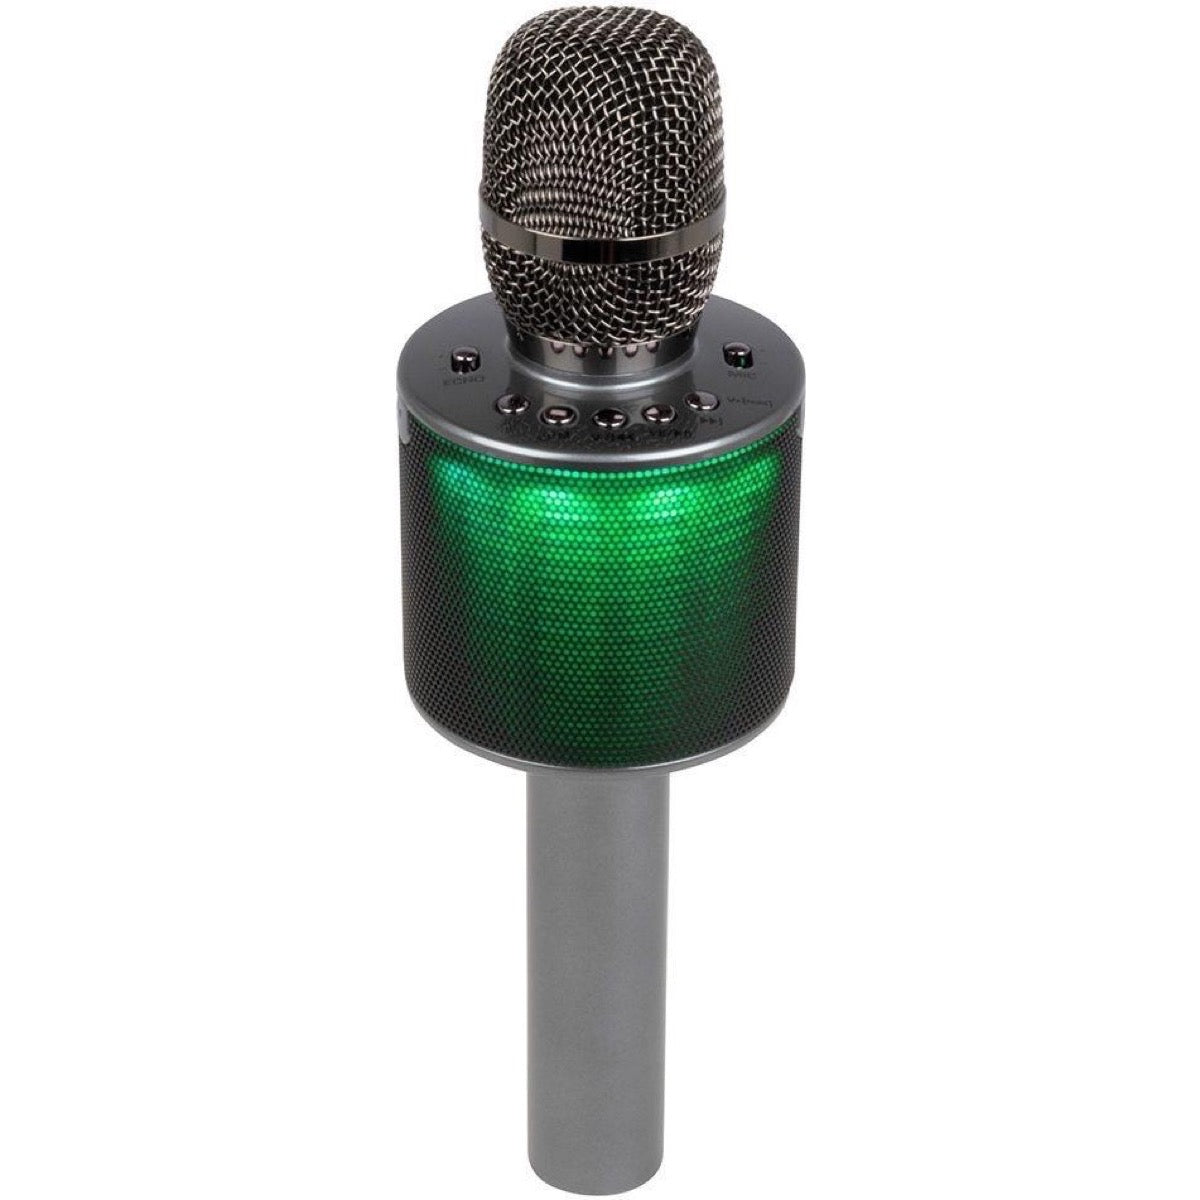 VocoPro Pop-Up Oke All-In-One Wireless Karaoke Microphone, Single